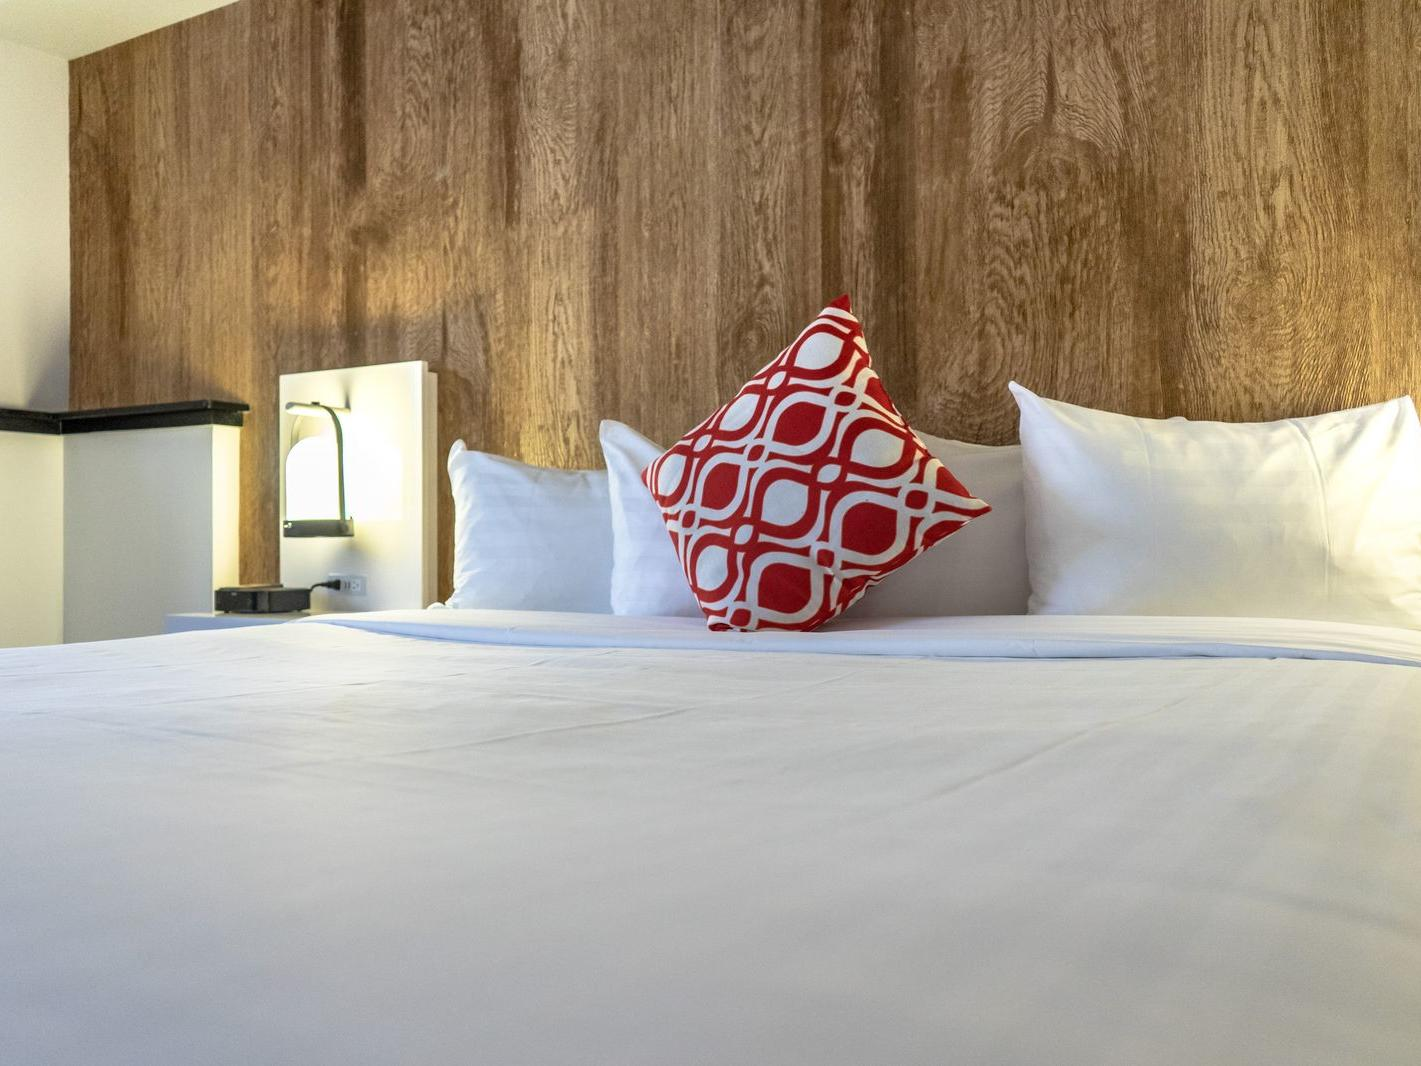 Bed in hotel room with wooden walls